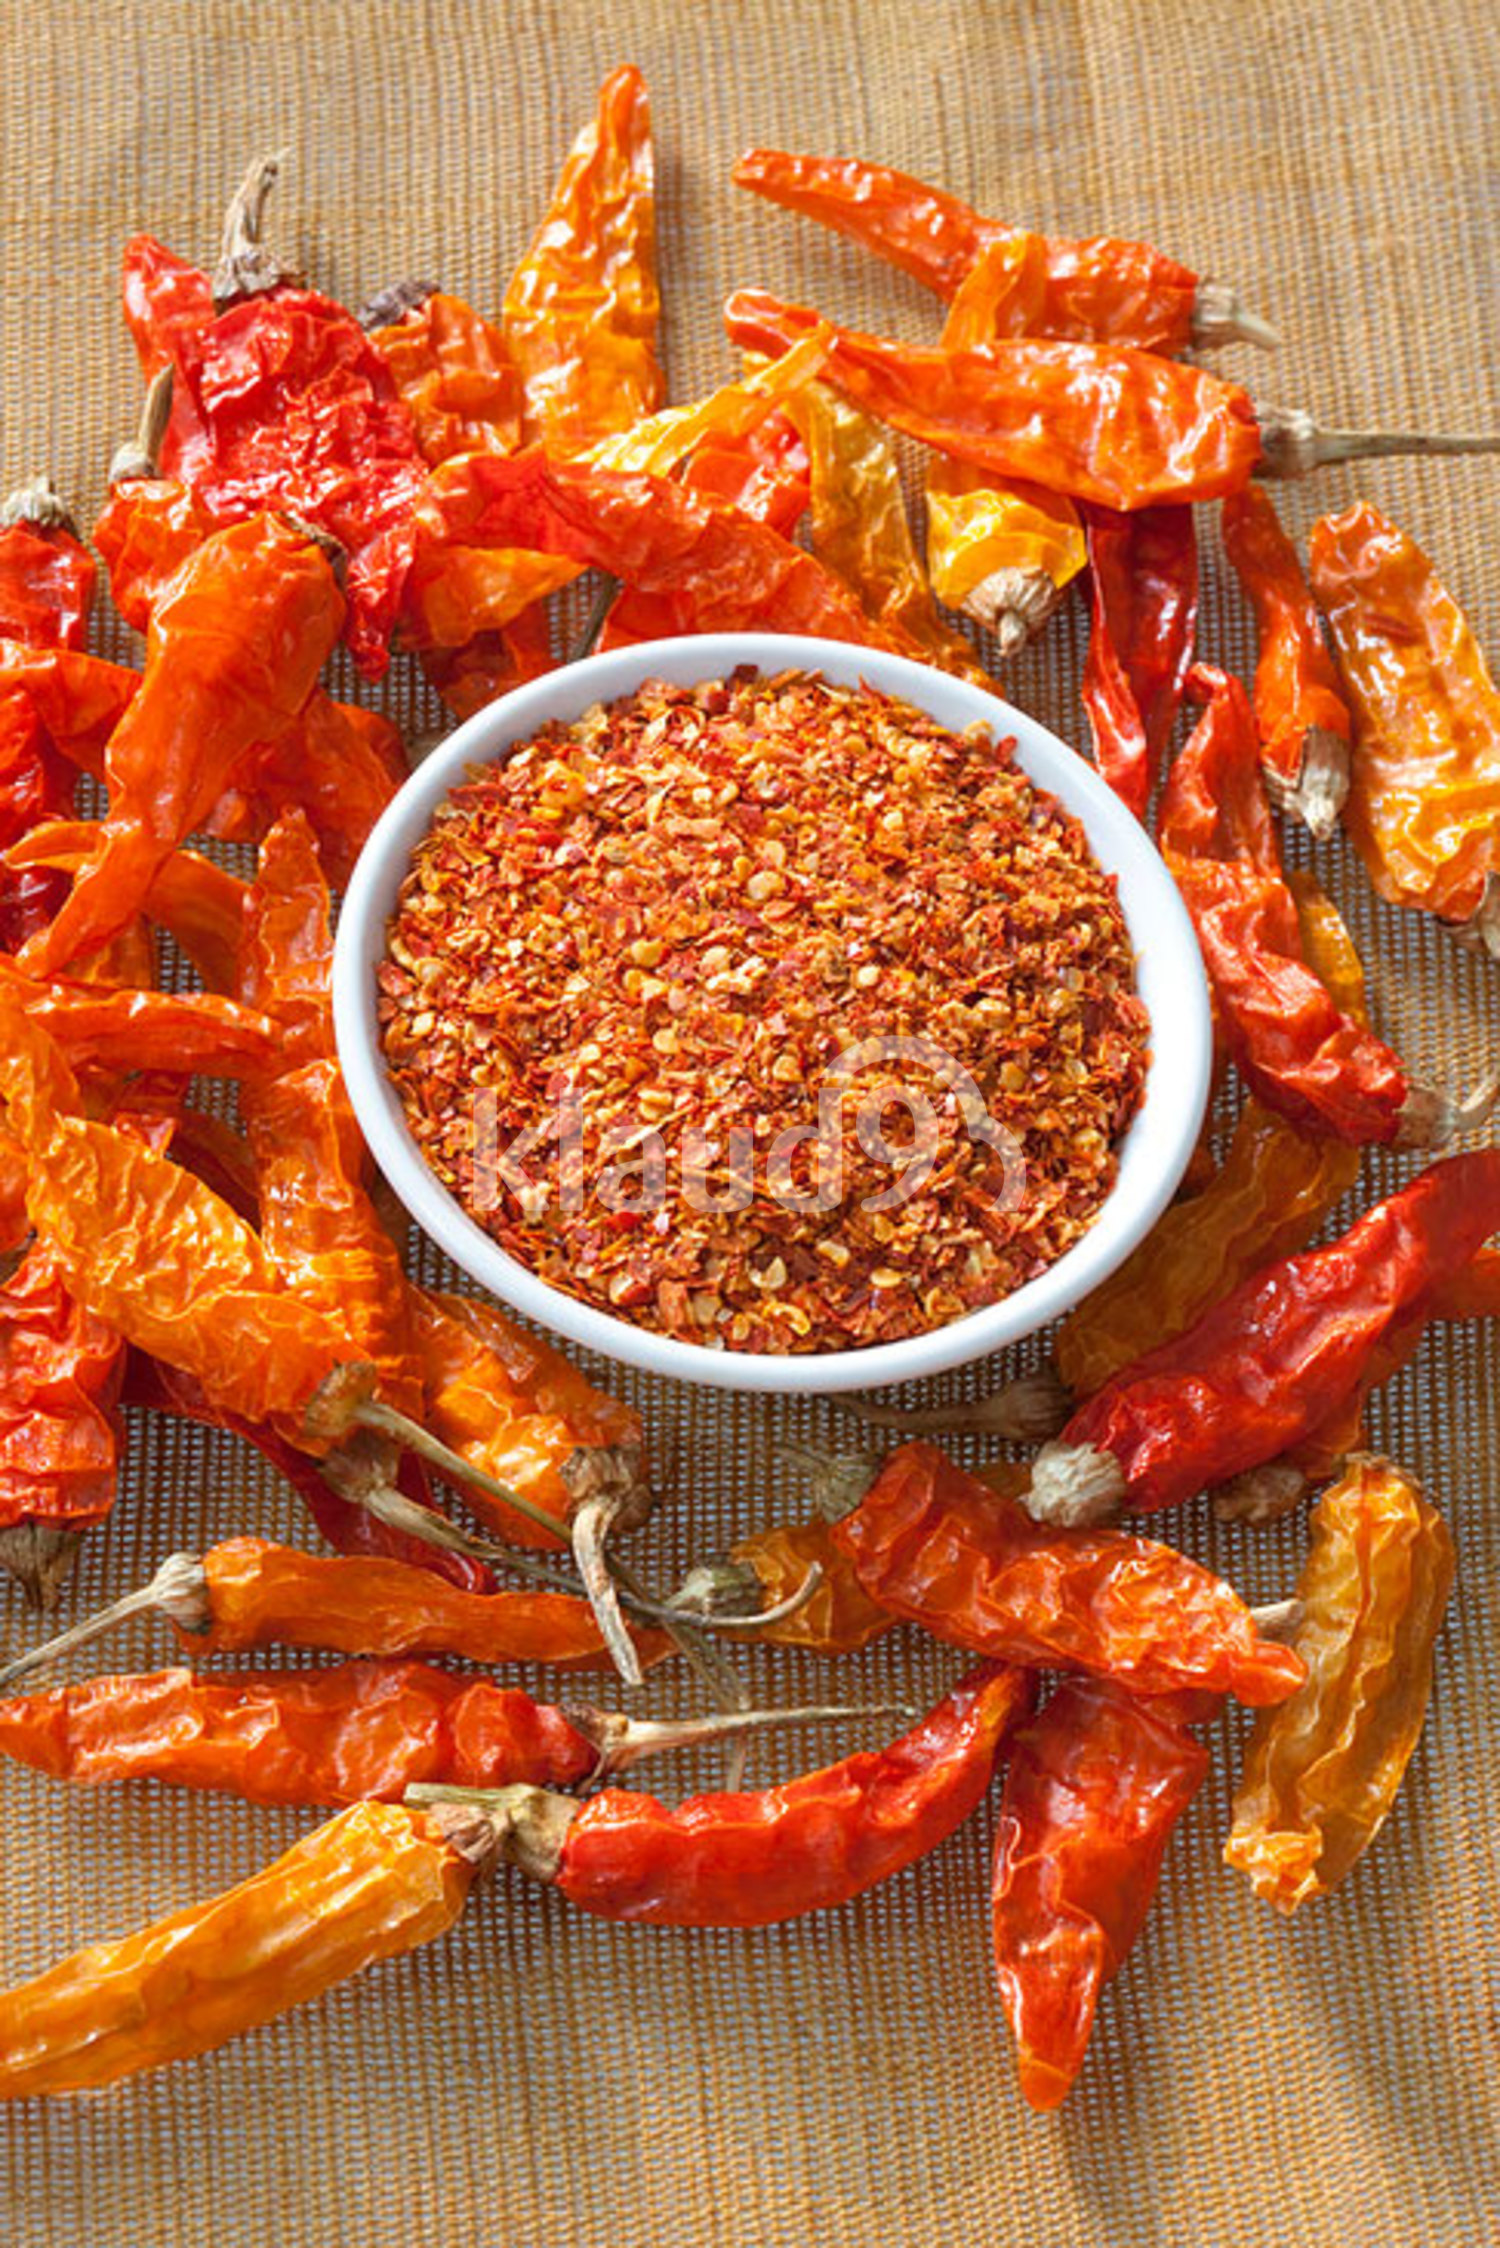 Dry Chili Pepper and red chilli powder